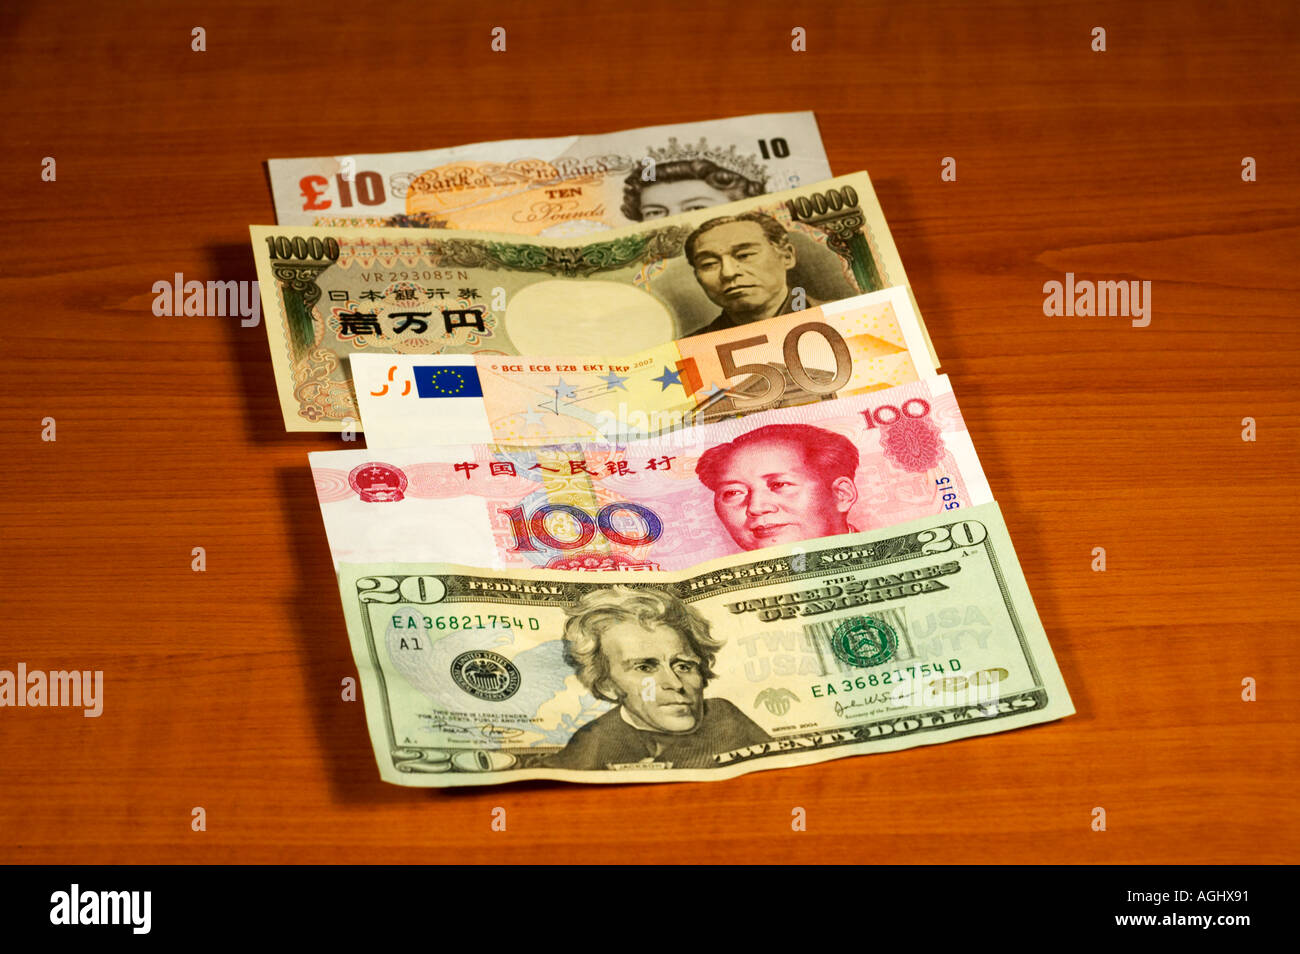 Yuan chinese currency and uk pounds stock photo 52033408 alamy international world currency spread on table us dollar chinese yuan euro japanese yen uk sterling pounds buycottarizona Gallery